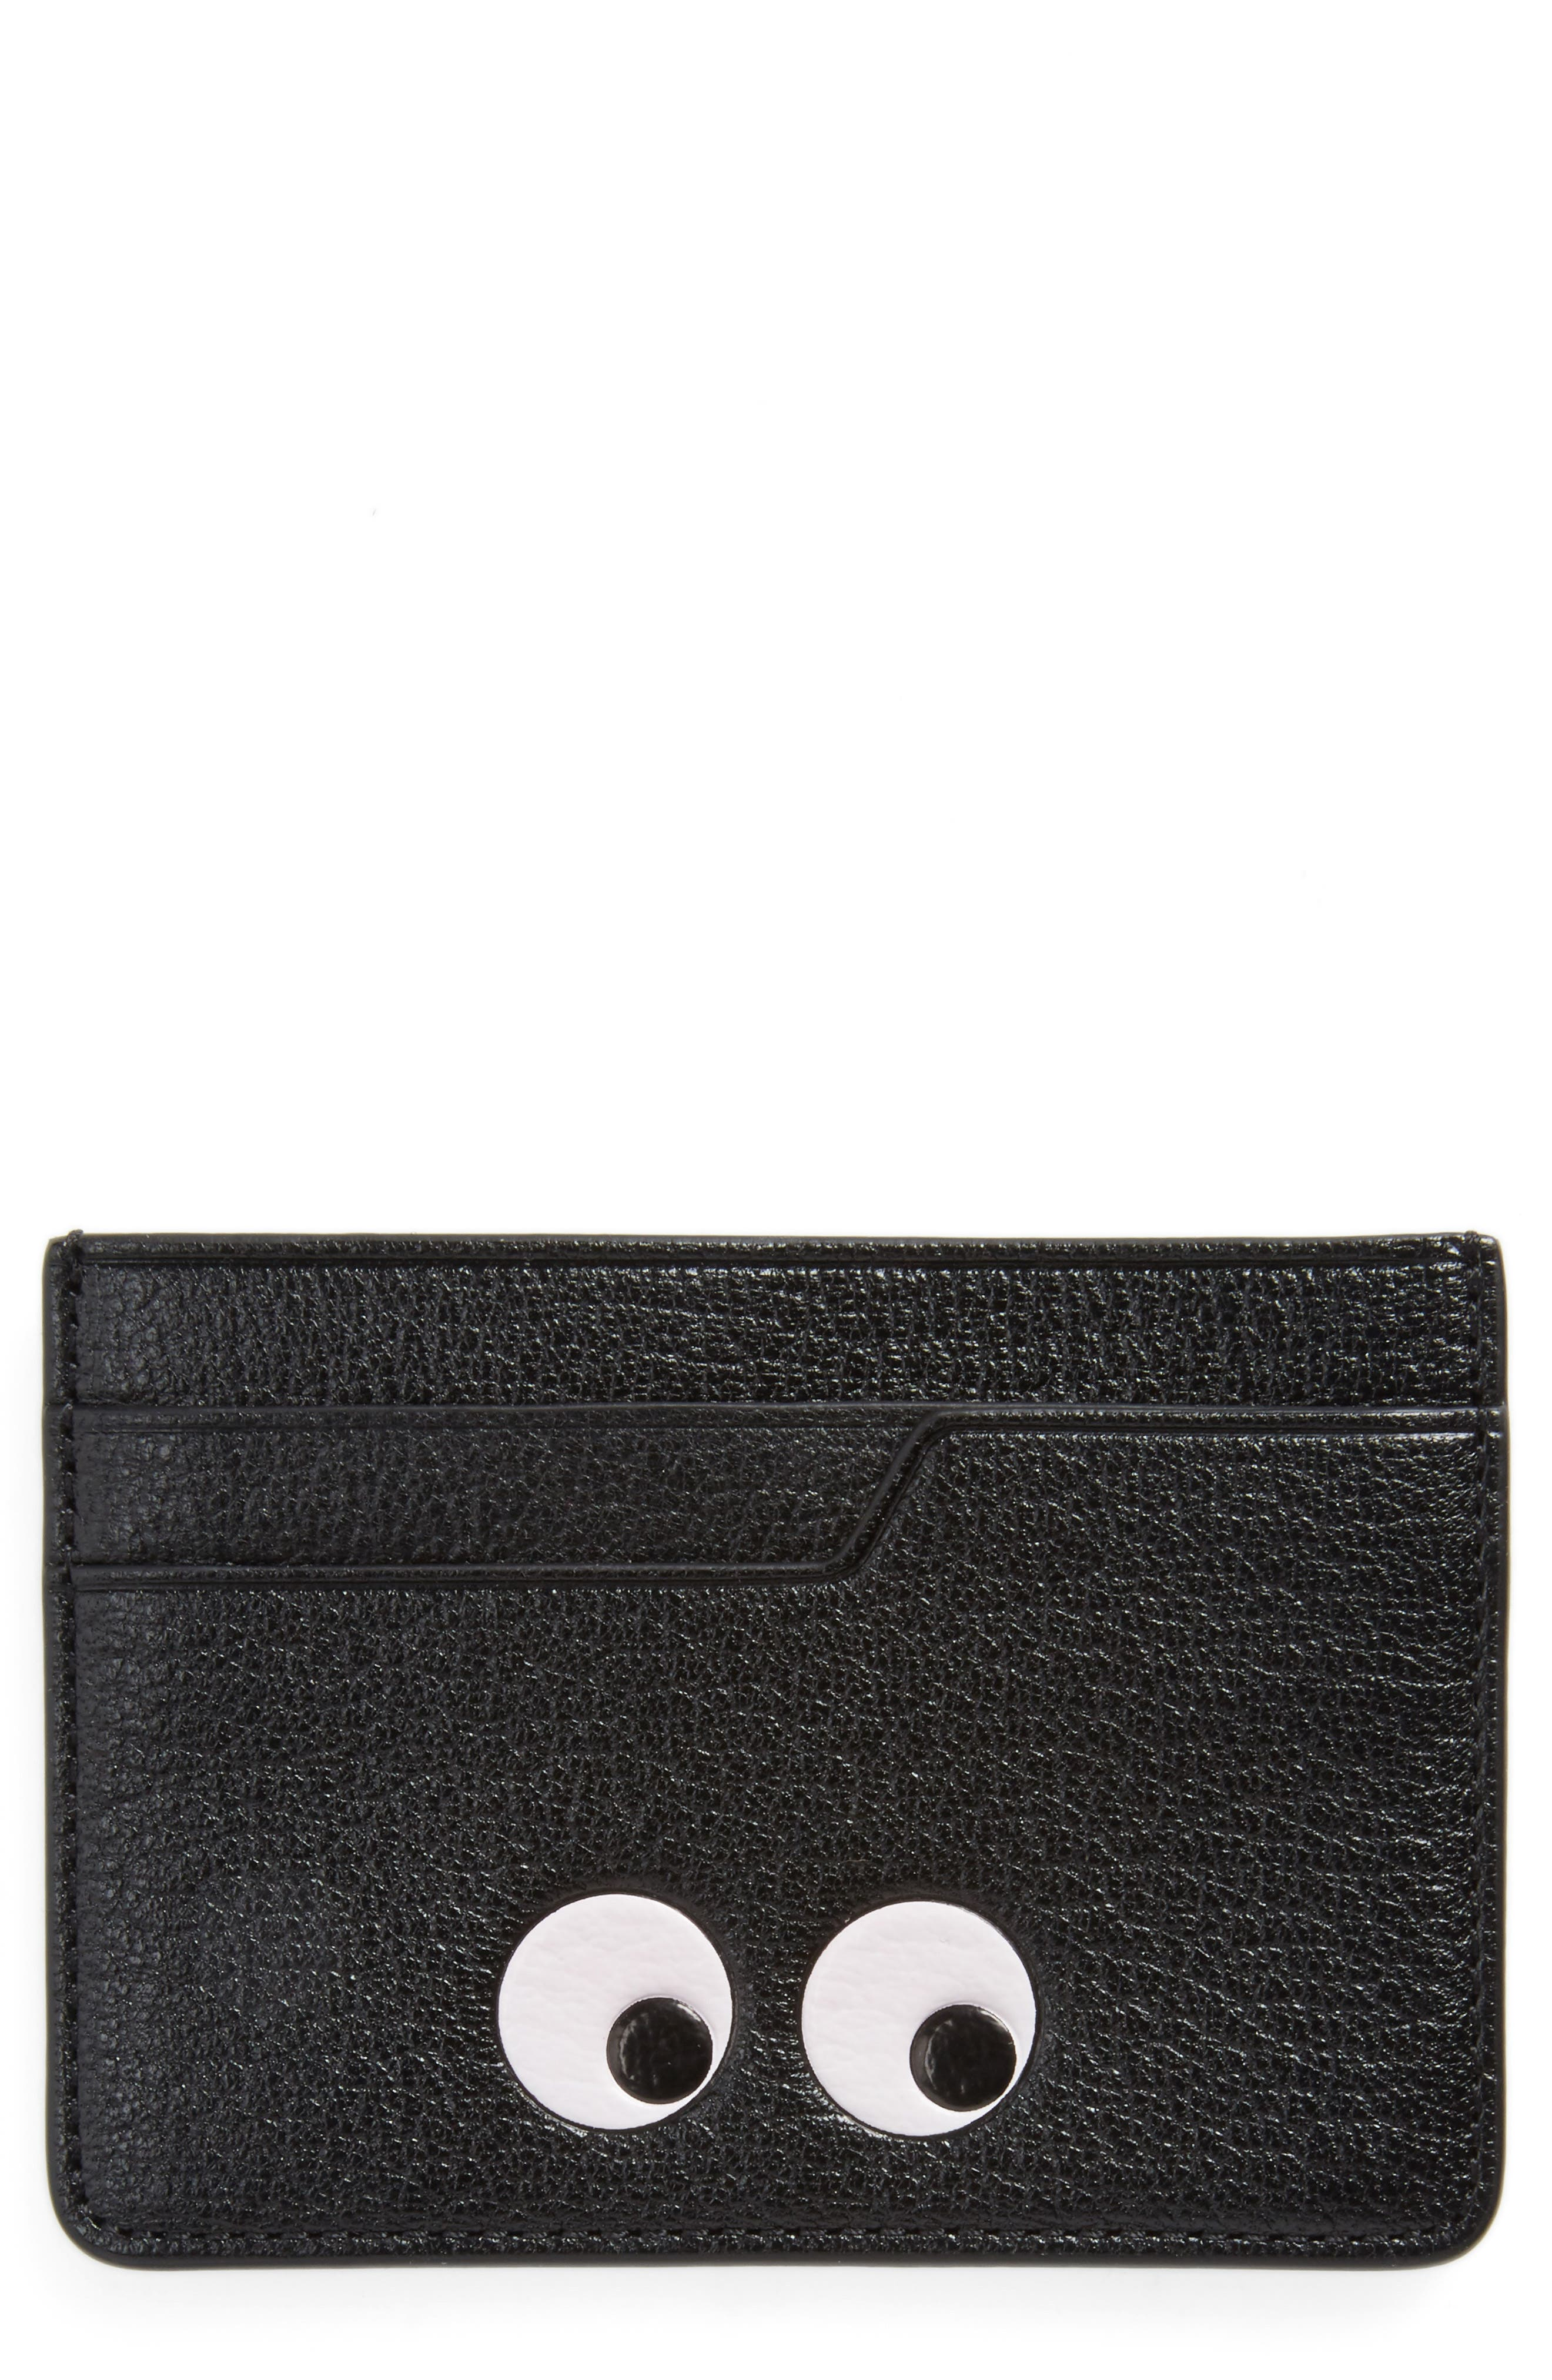 Eyes Leather Card Case,                             Main thumbnail 1, color,                             Black